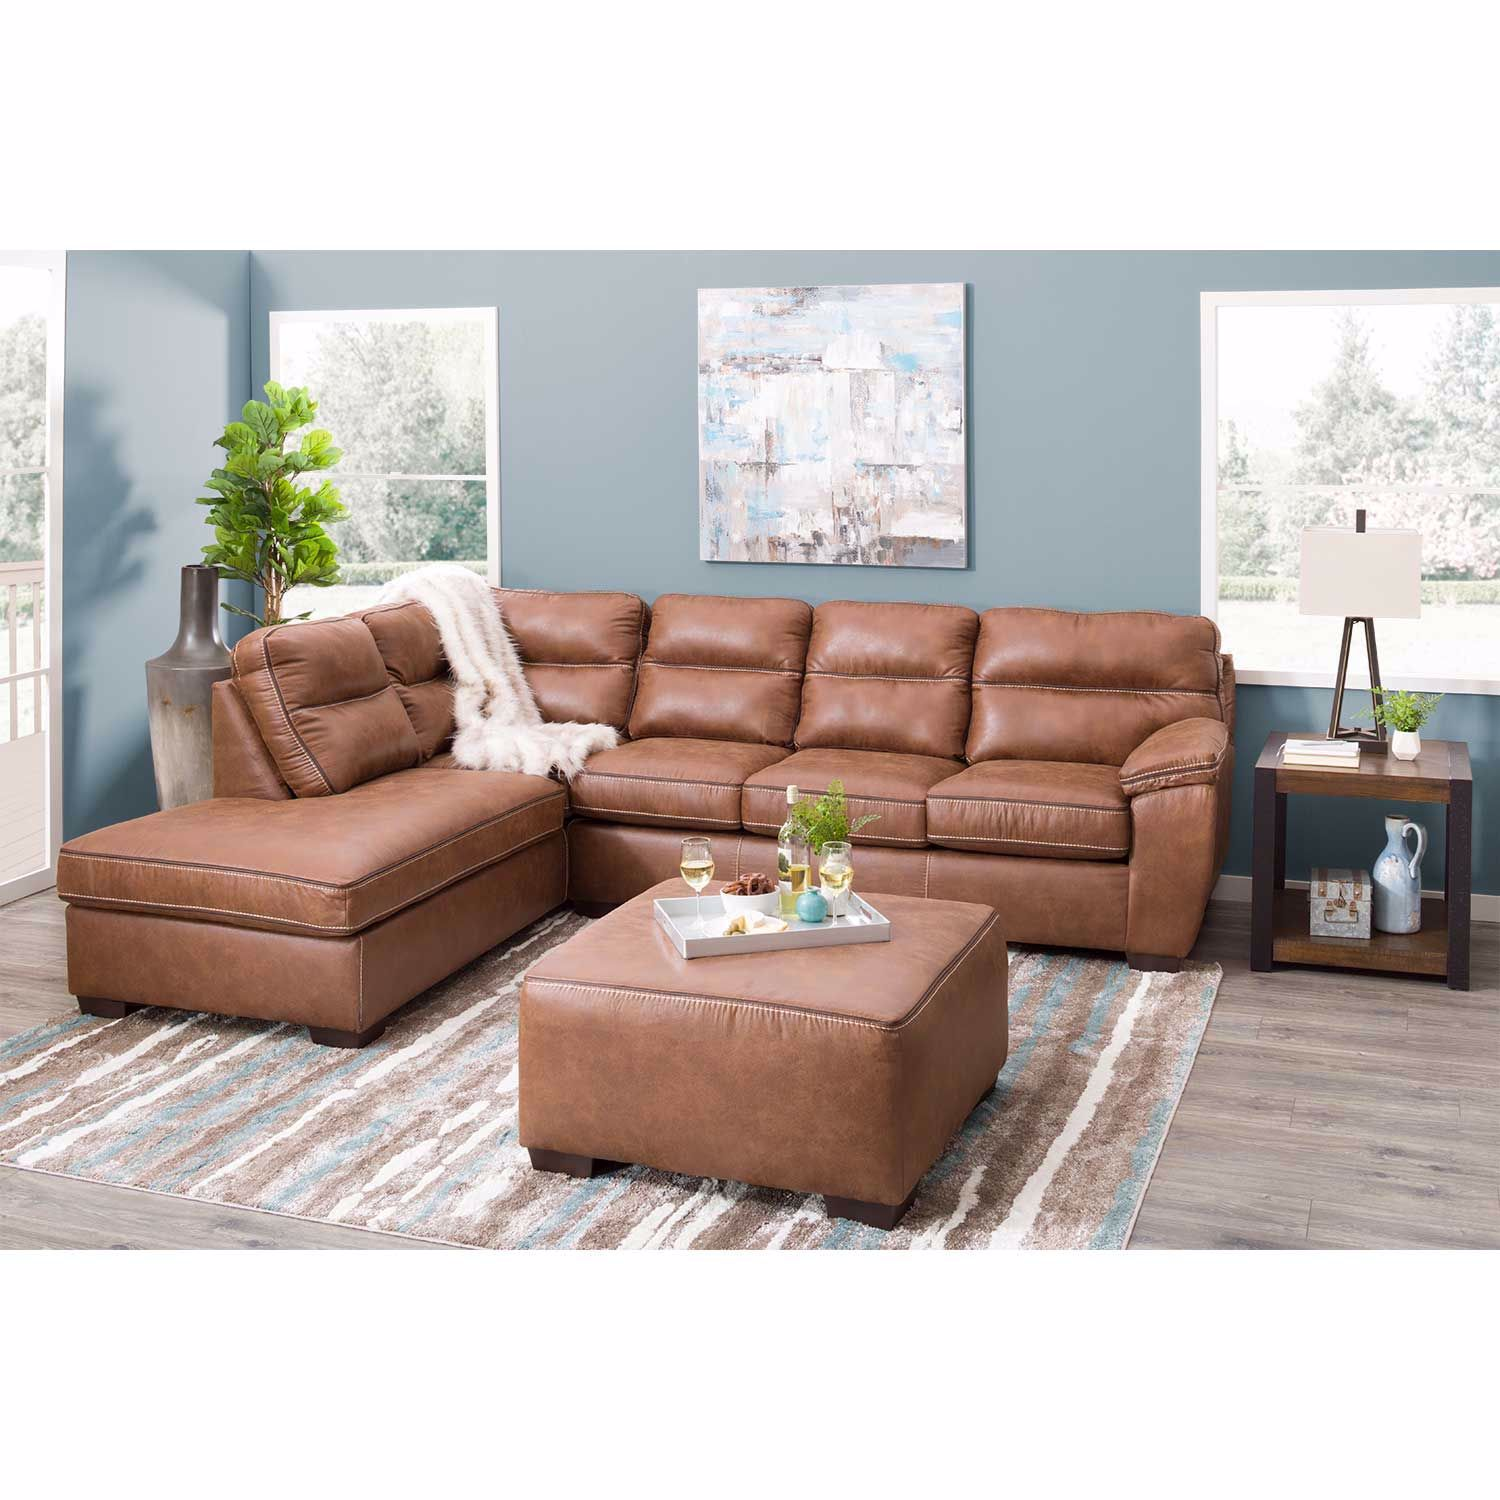 Picture of Wesley 2PC LAF Sofa Sectional